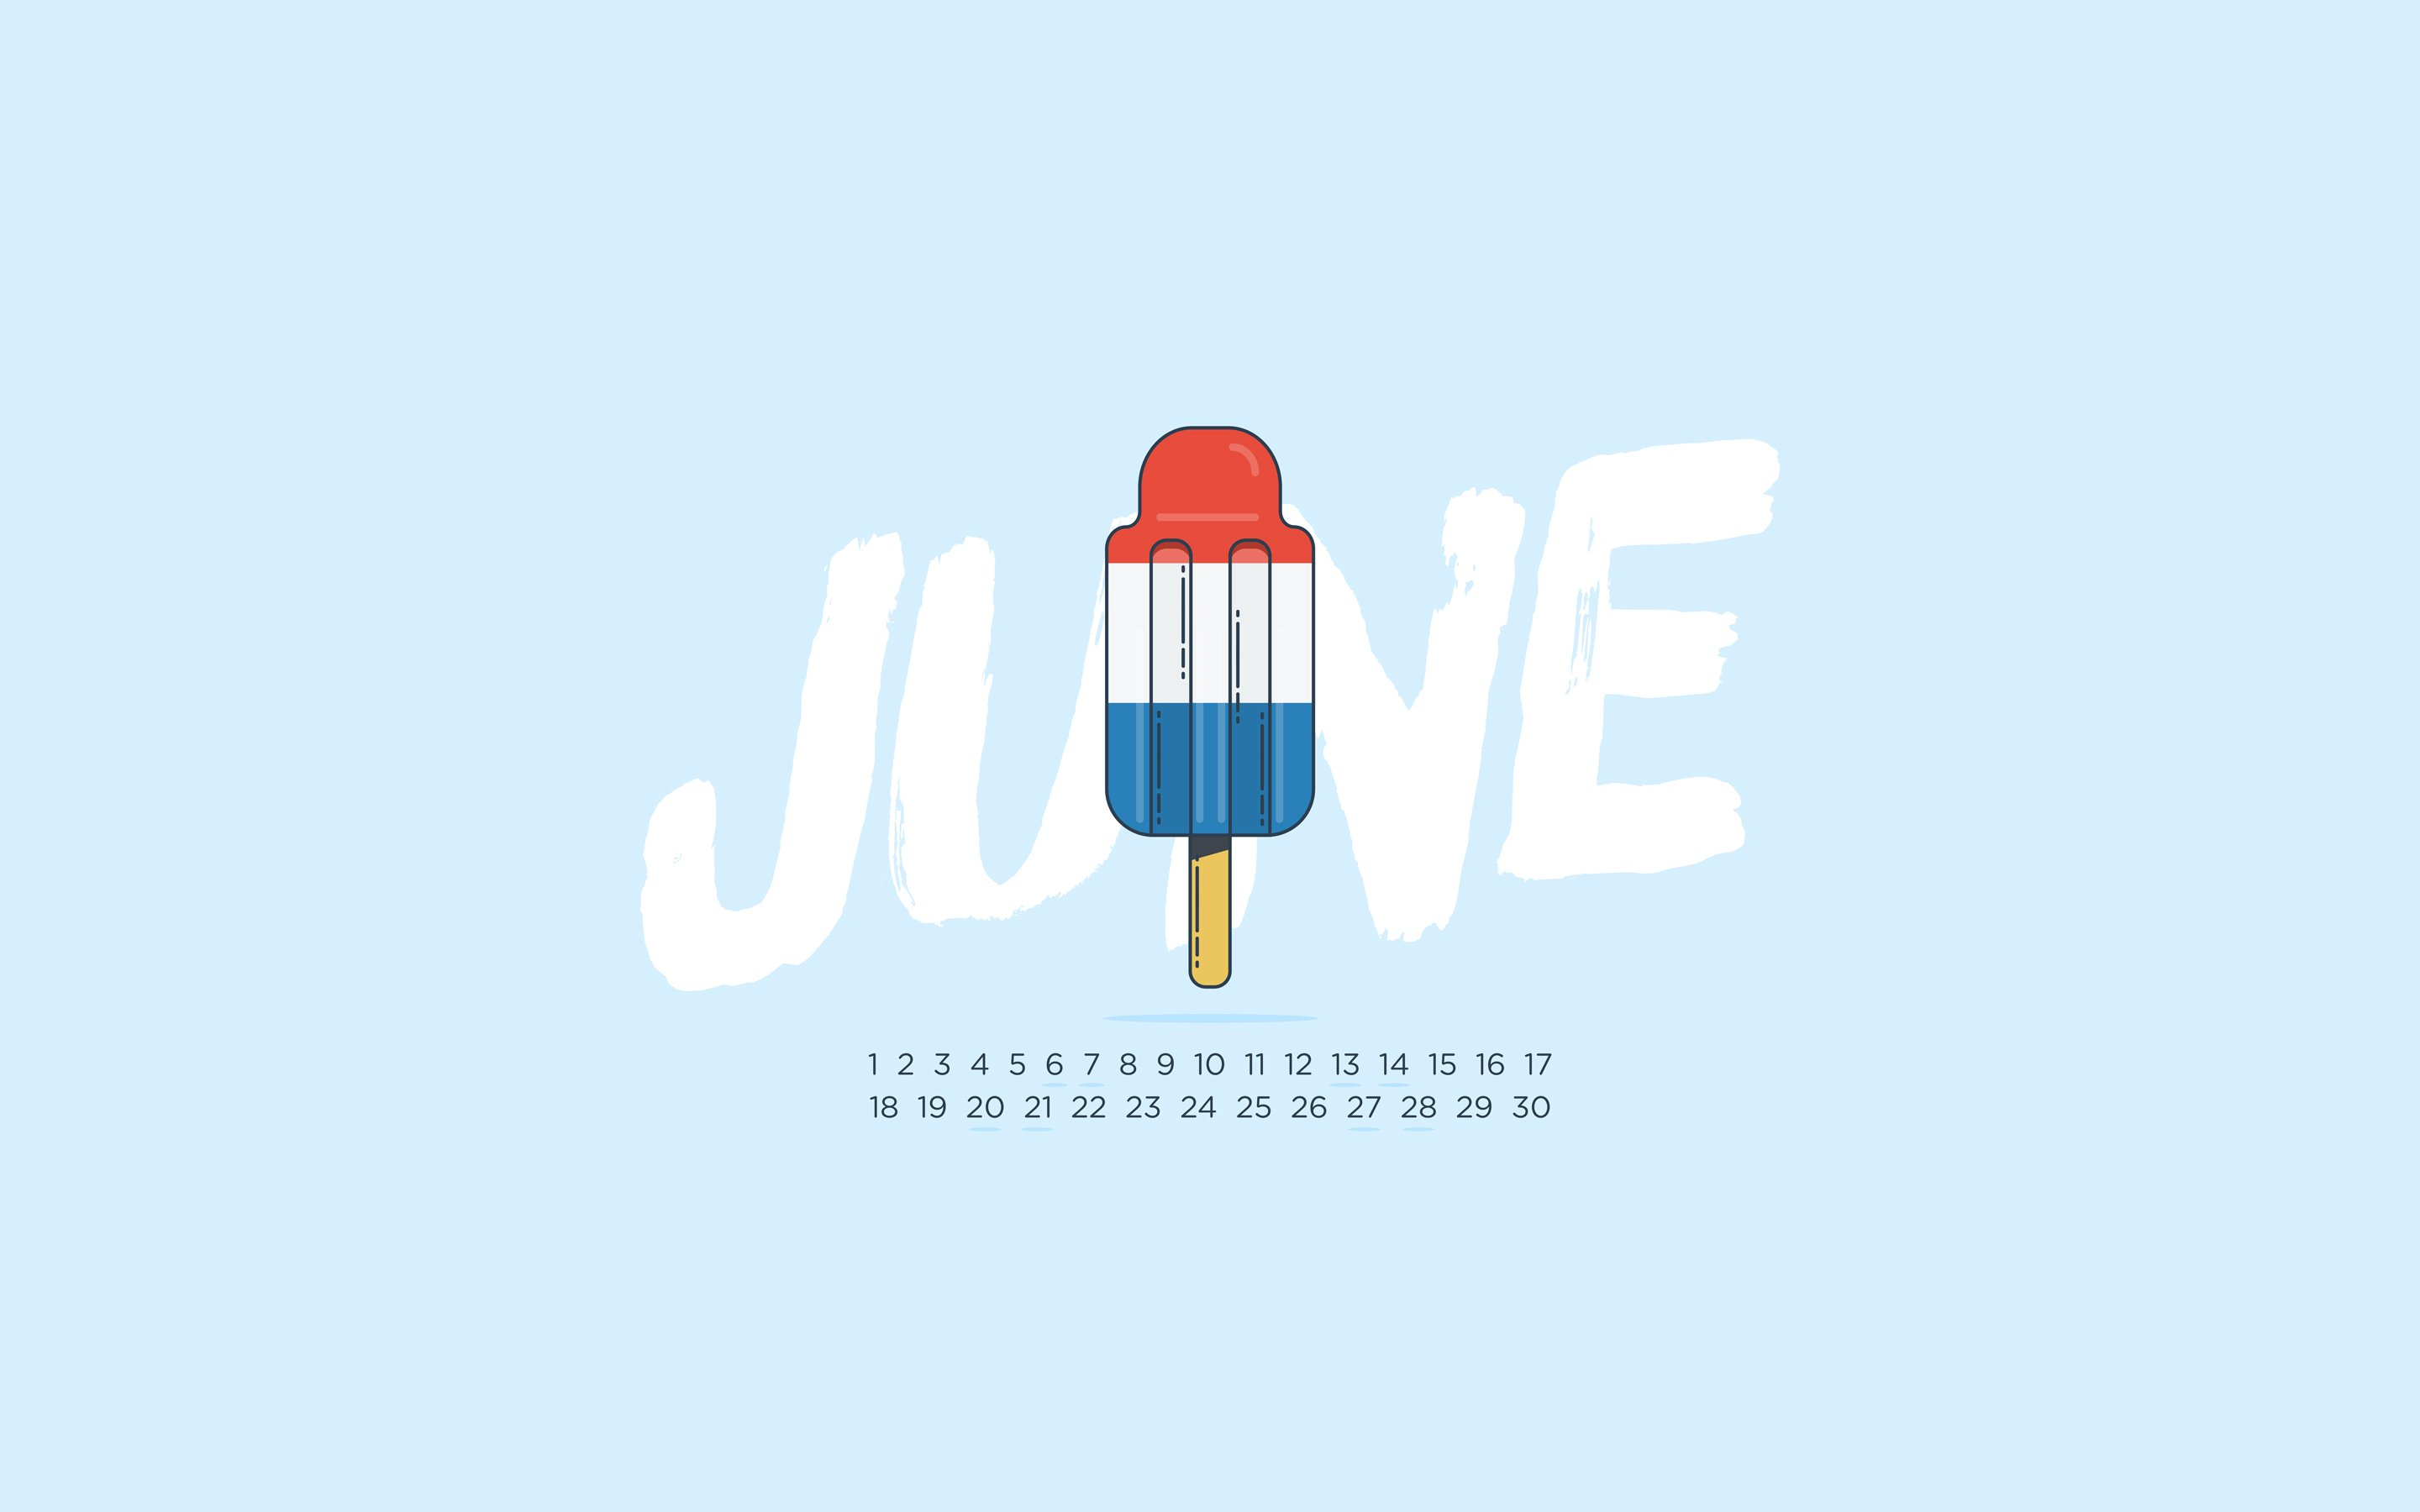 so you can download the June 2015 Desktop Calendar Wallpaper 2880x1800